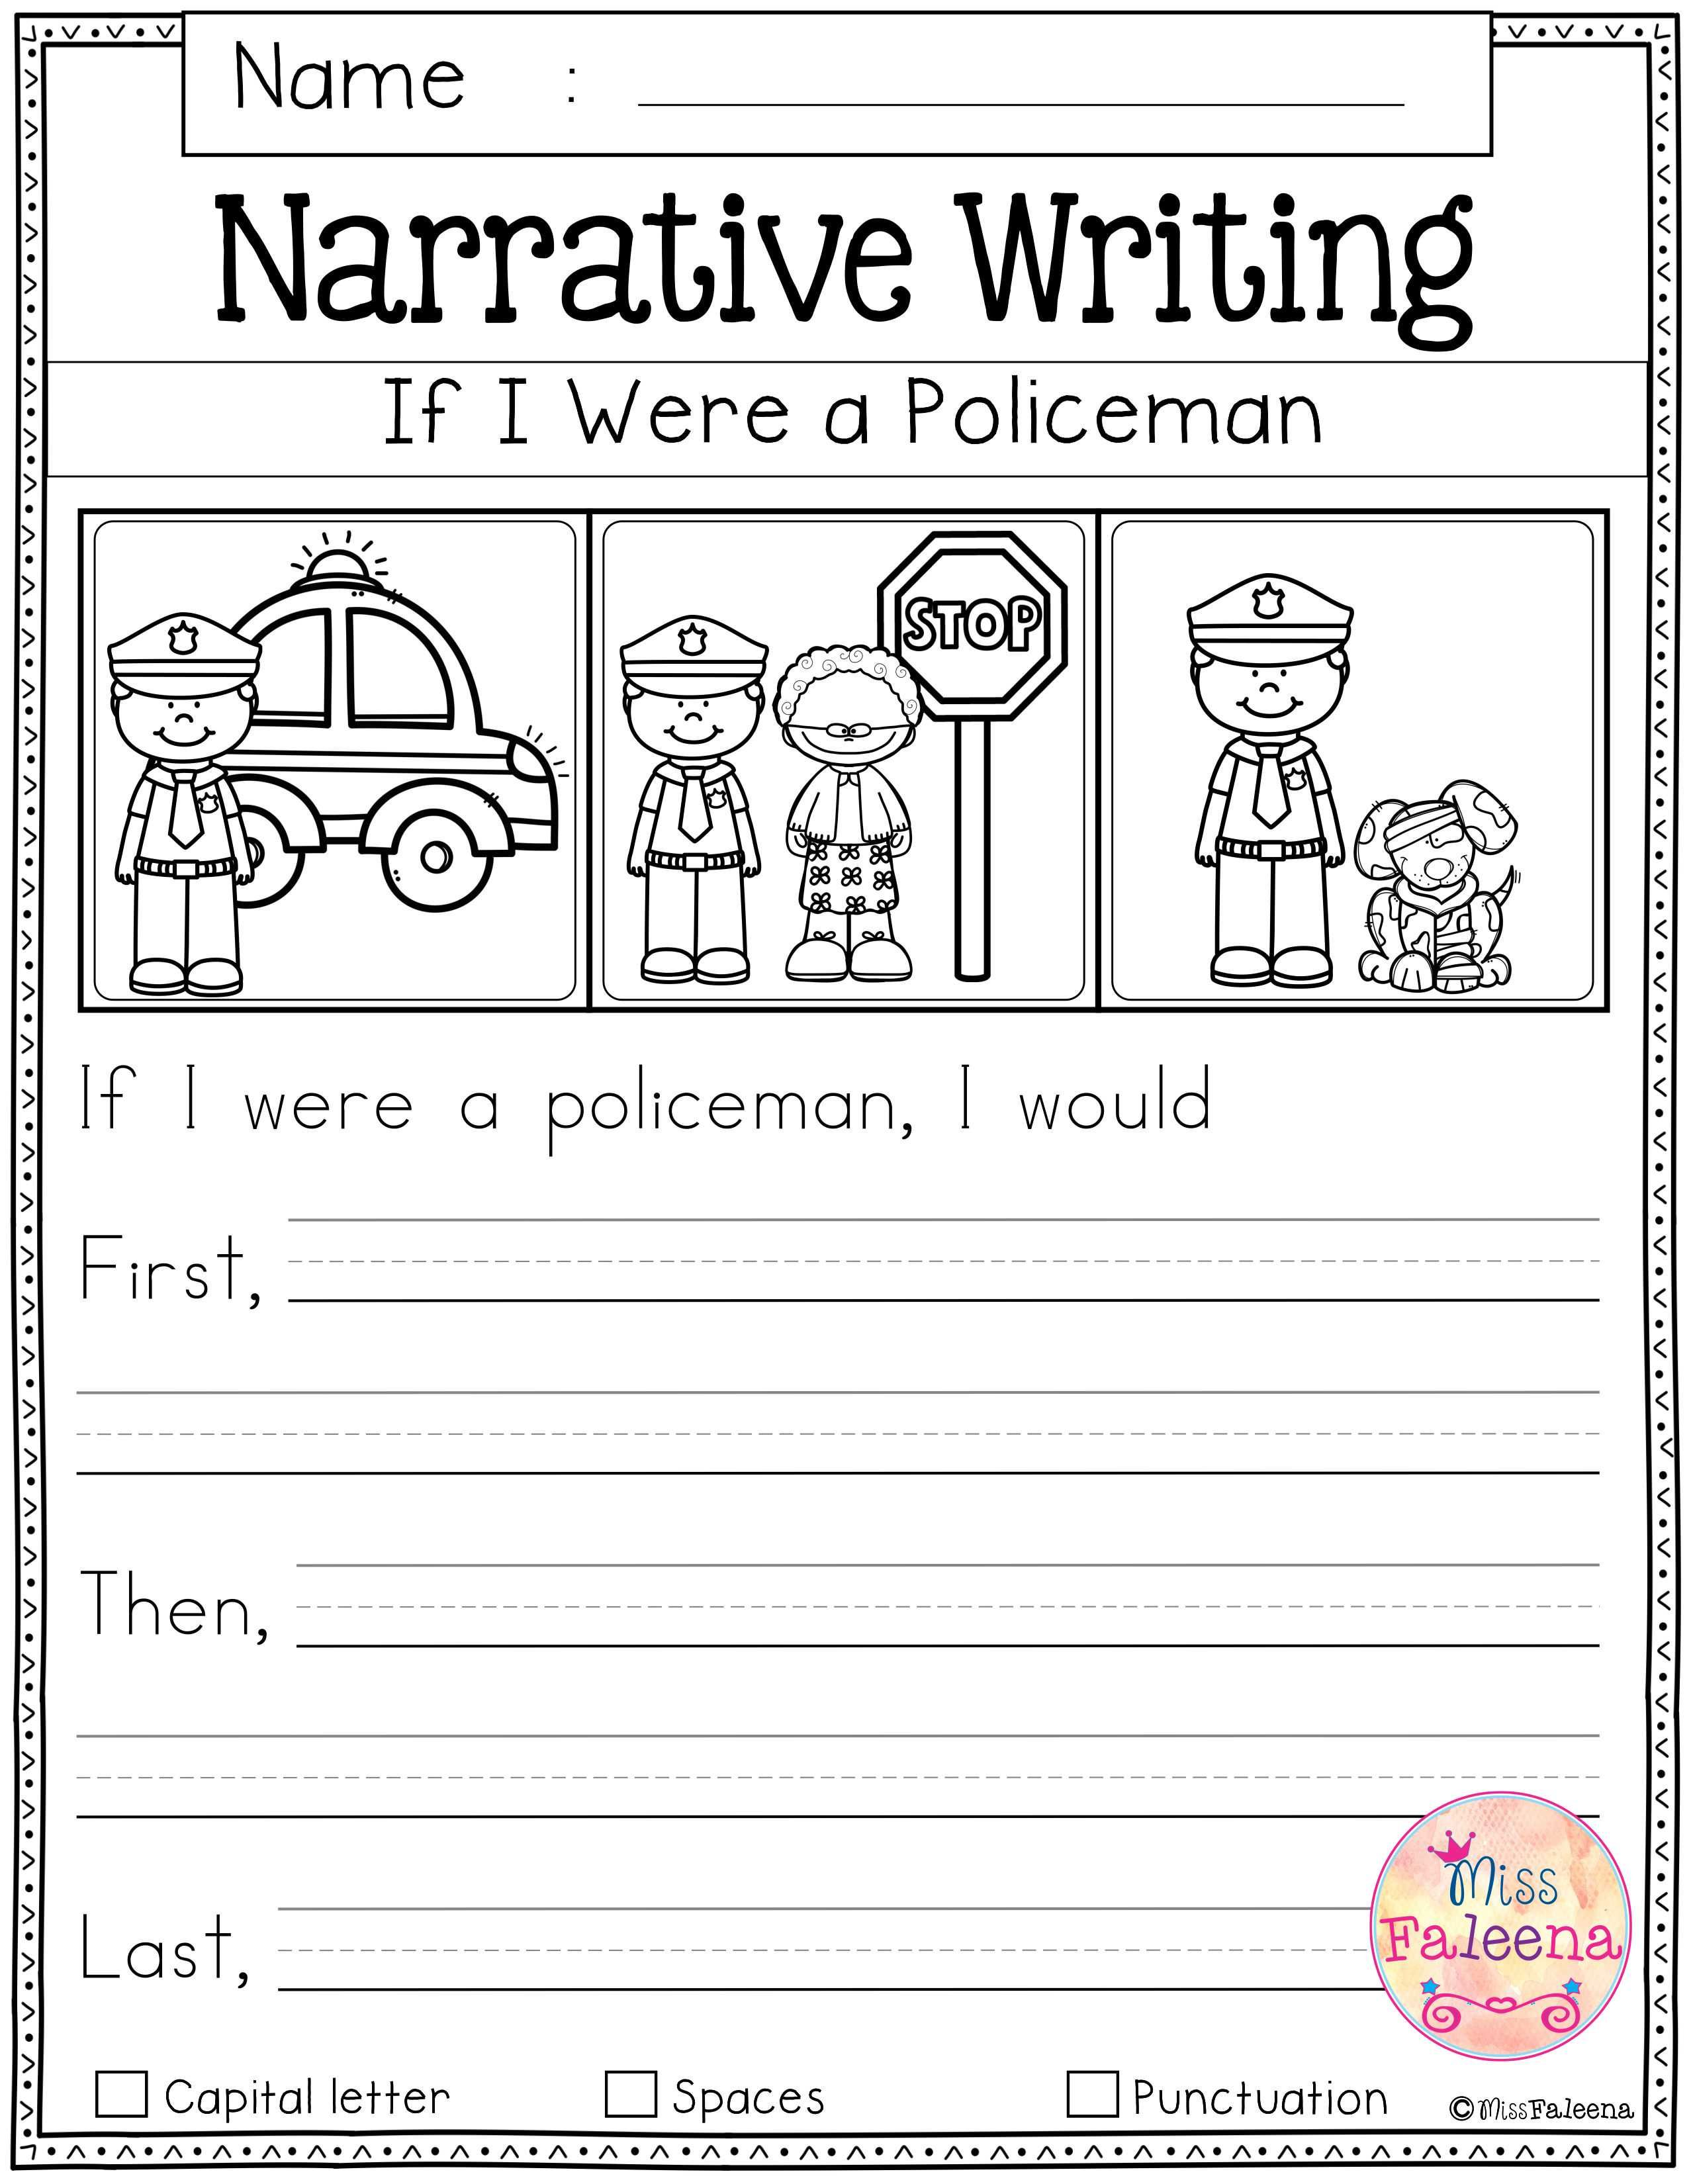 Free Writing Prompts Contains 20 Free Pages Of Writing Prompts Worksheets This Product Is Kindergarten Writing Prompts Free Writing Prompts Narrative Writing Story writing for kids worksheets